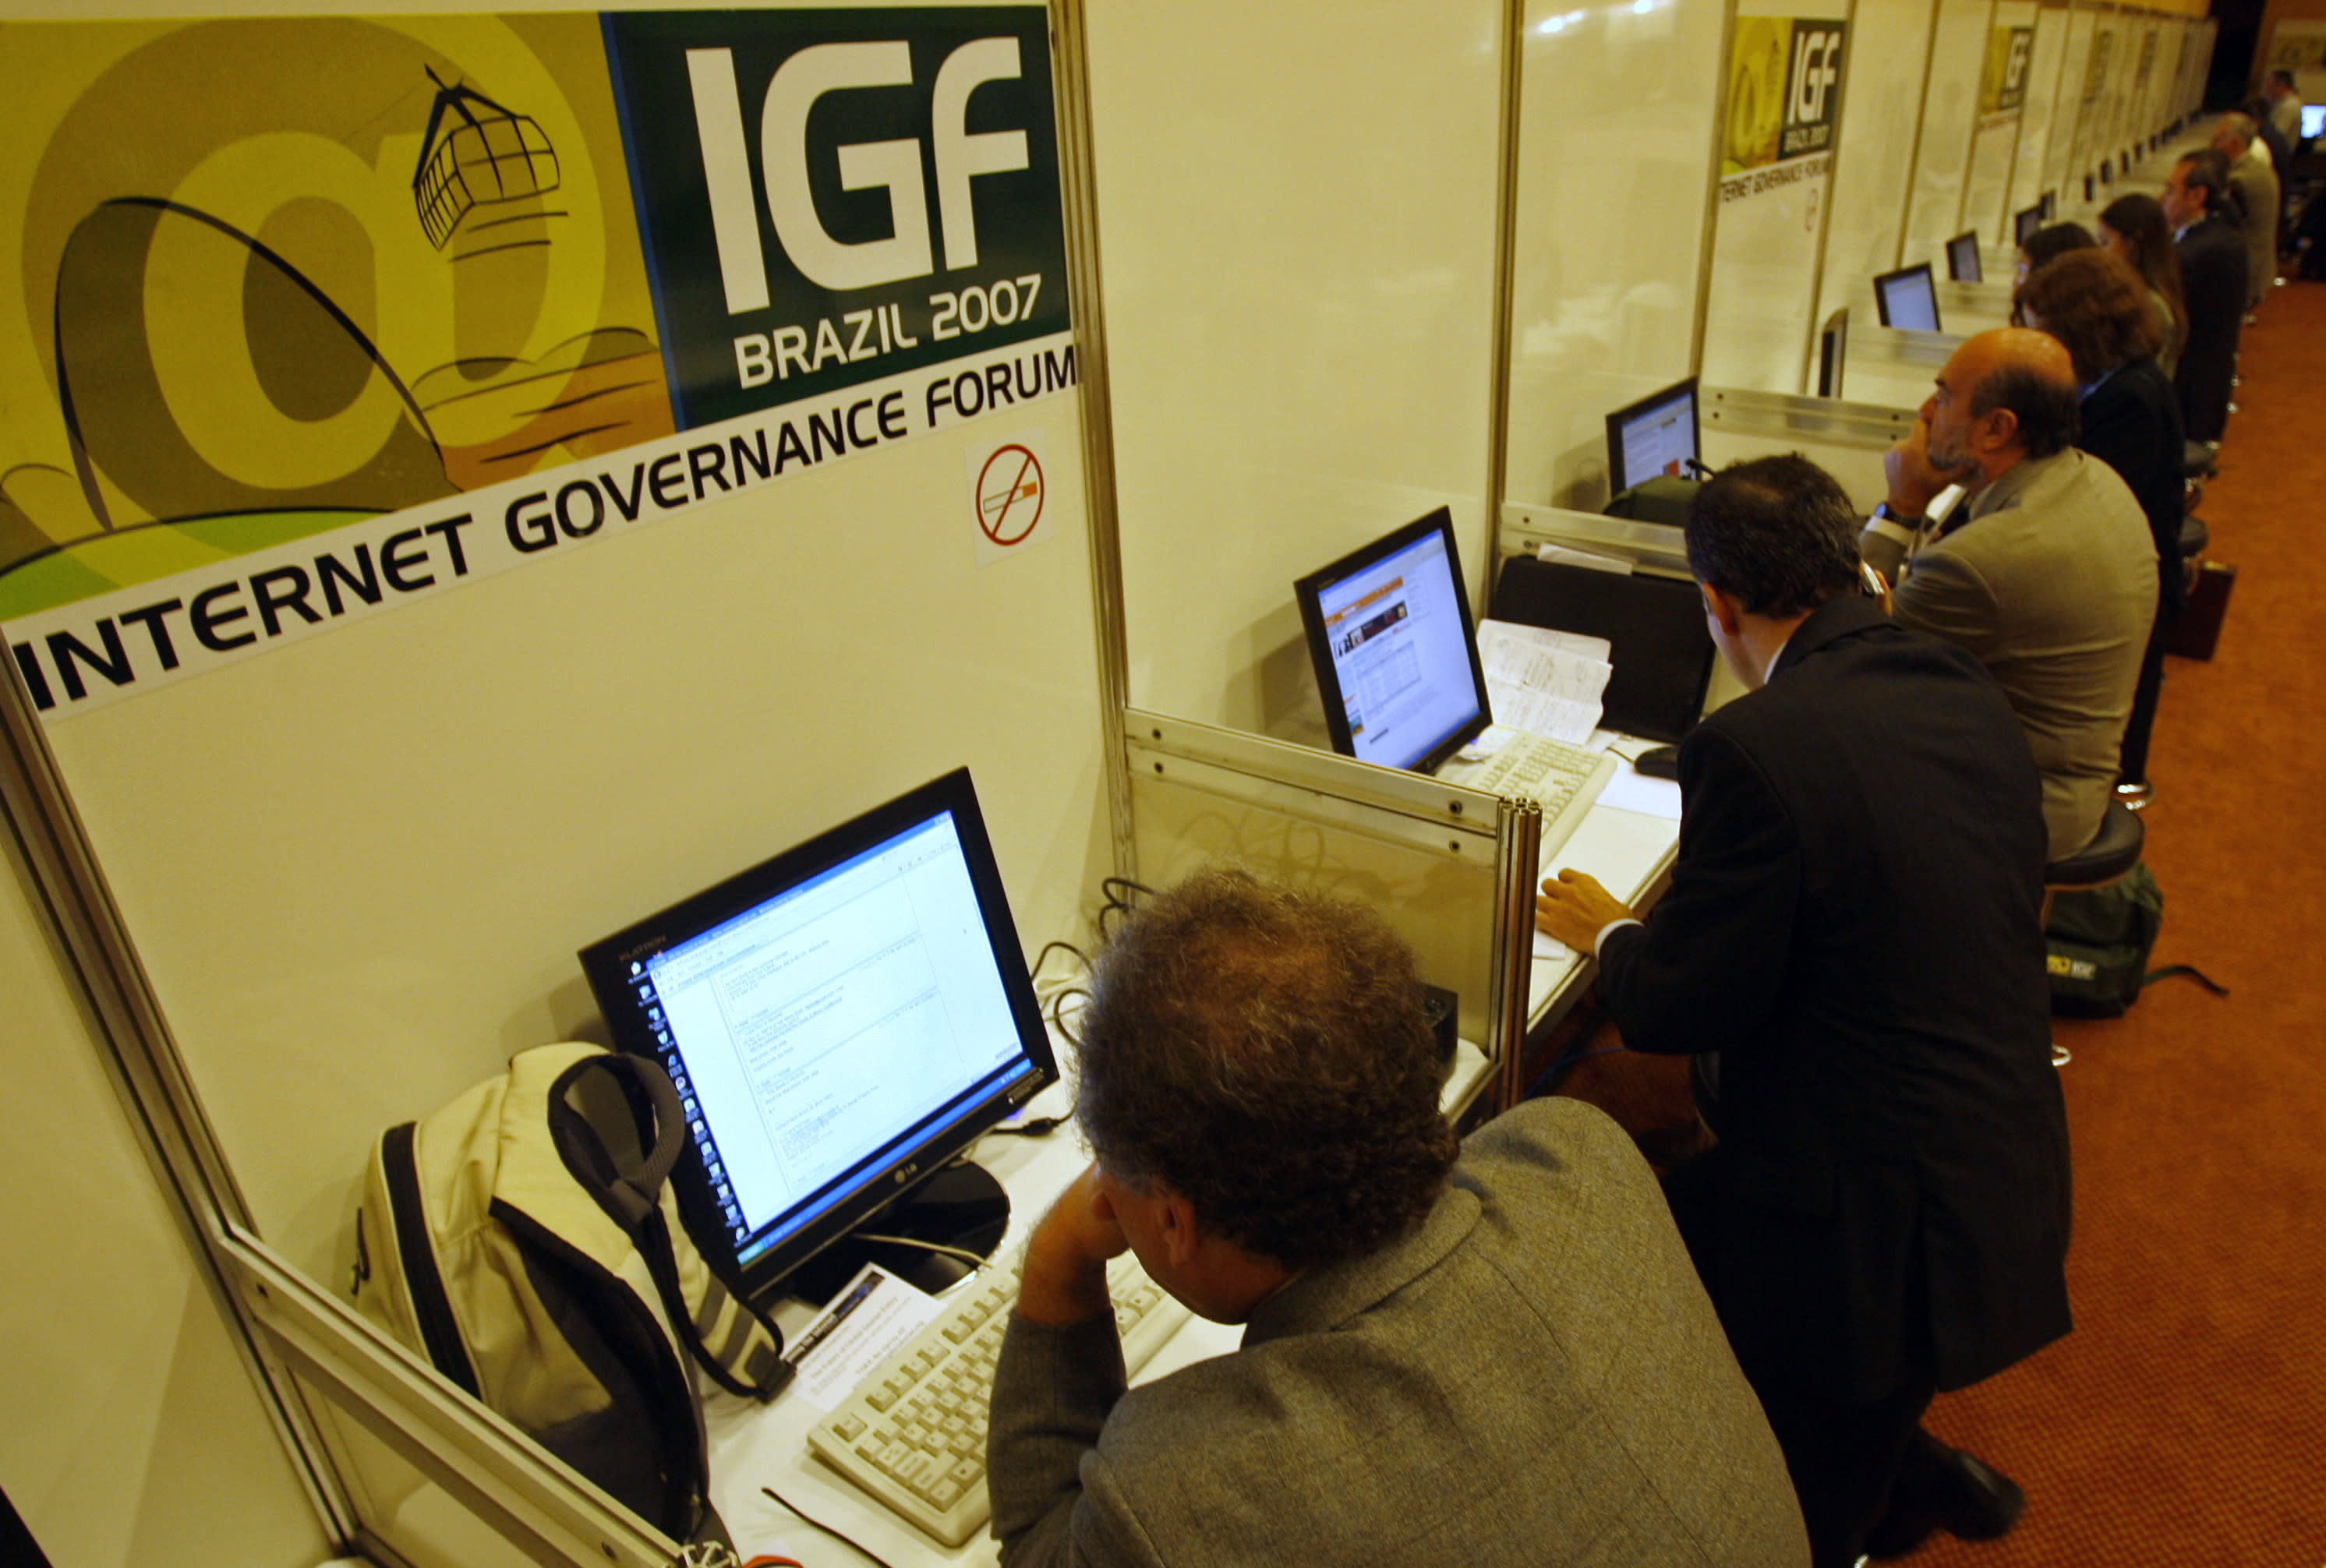 FILE - In this Nov. 12, 2007 file photo, people uses the internet during the Internet Governance Forum in Rio de Janeiro, Brazil. President Dilma Rousseff has ordered a series of measures aimed to divorce itself from the U.S.-centric Internet and at greater Brazilian online independence and security following revelations that the U.S. National Security Agency intercepted her communications, hacked into the state-owned Petrobras oil company's network and spied on Brazilians who entrust their personal data to U.S. tech companies such as Facebook and Google.(AP Photo/Ricardo Moraes, File)